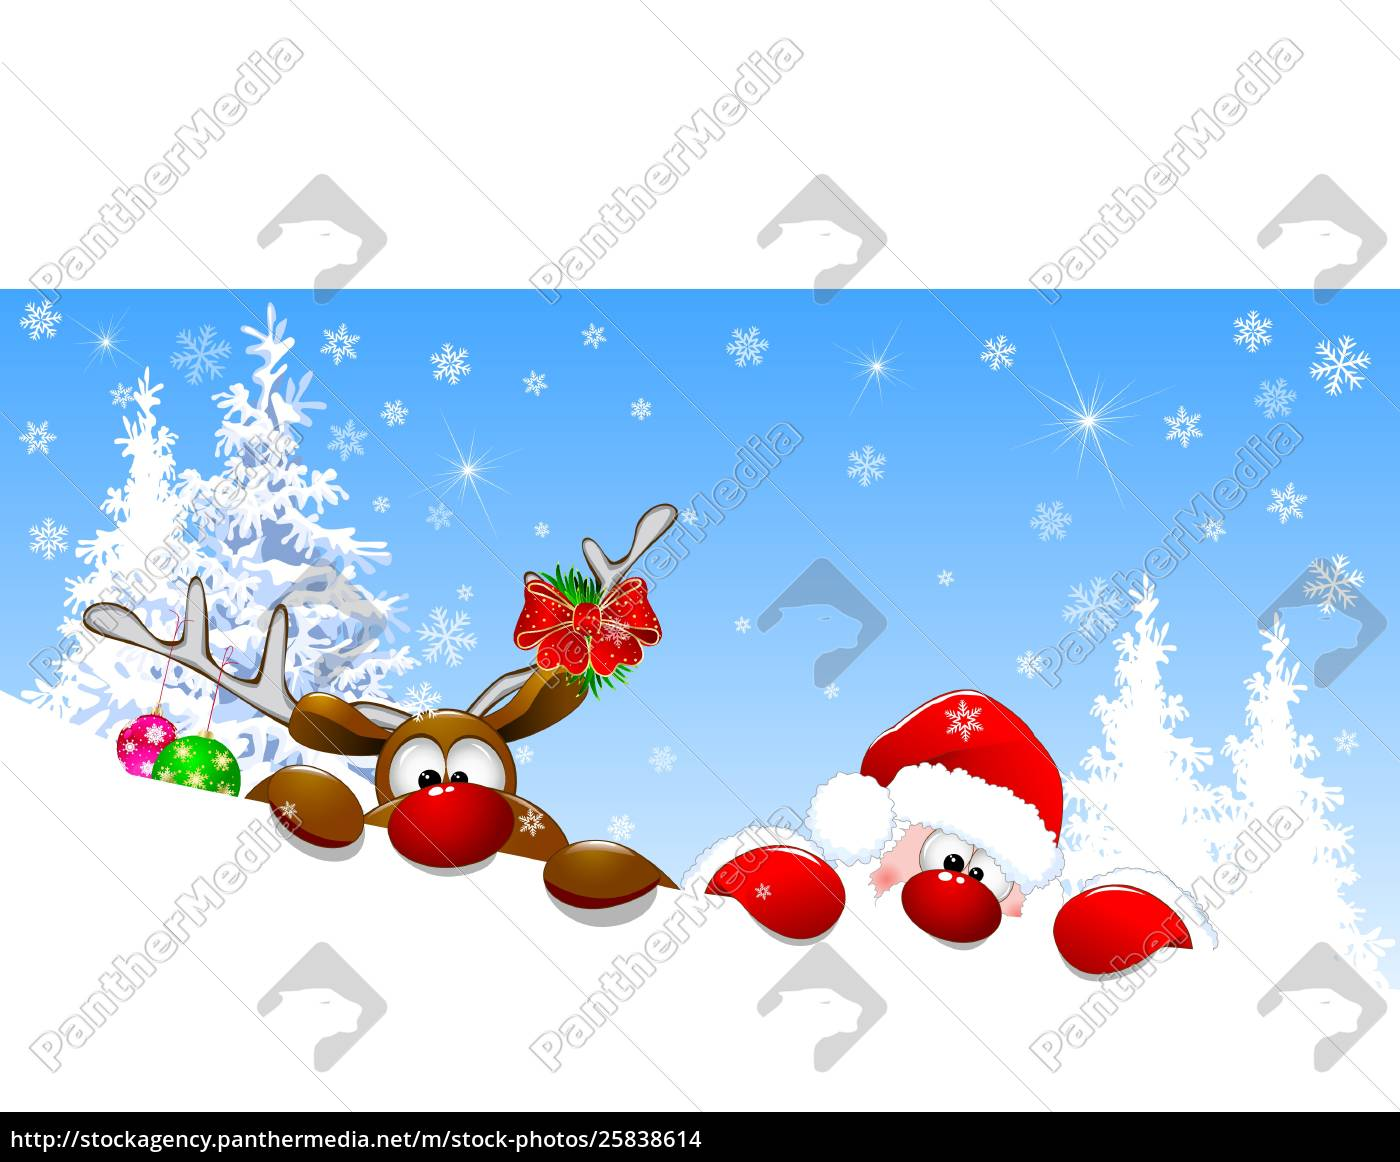 santa, and, deer, in, winter, forest - 25838614